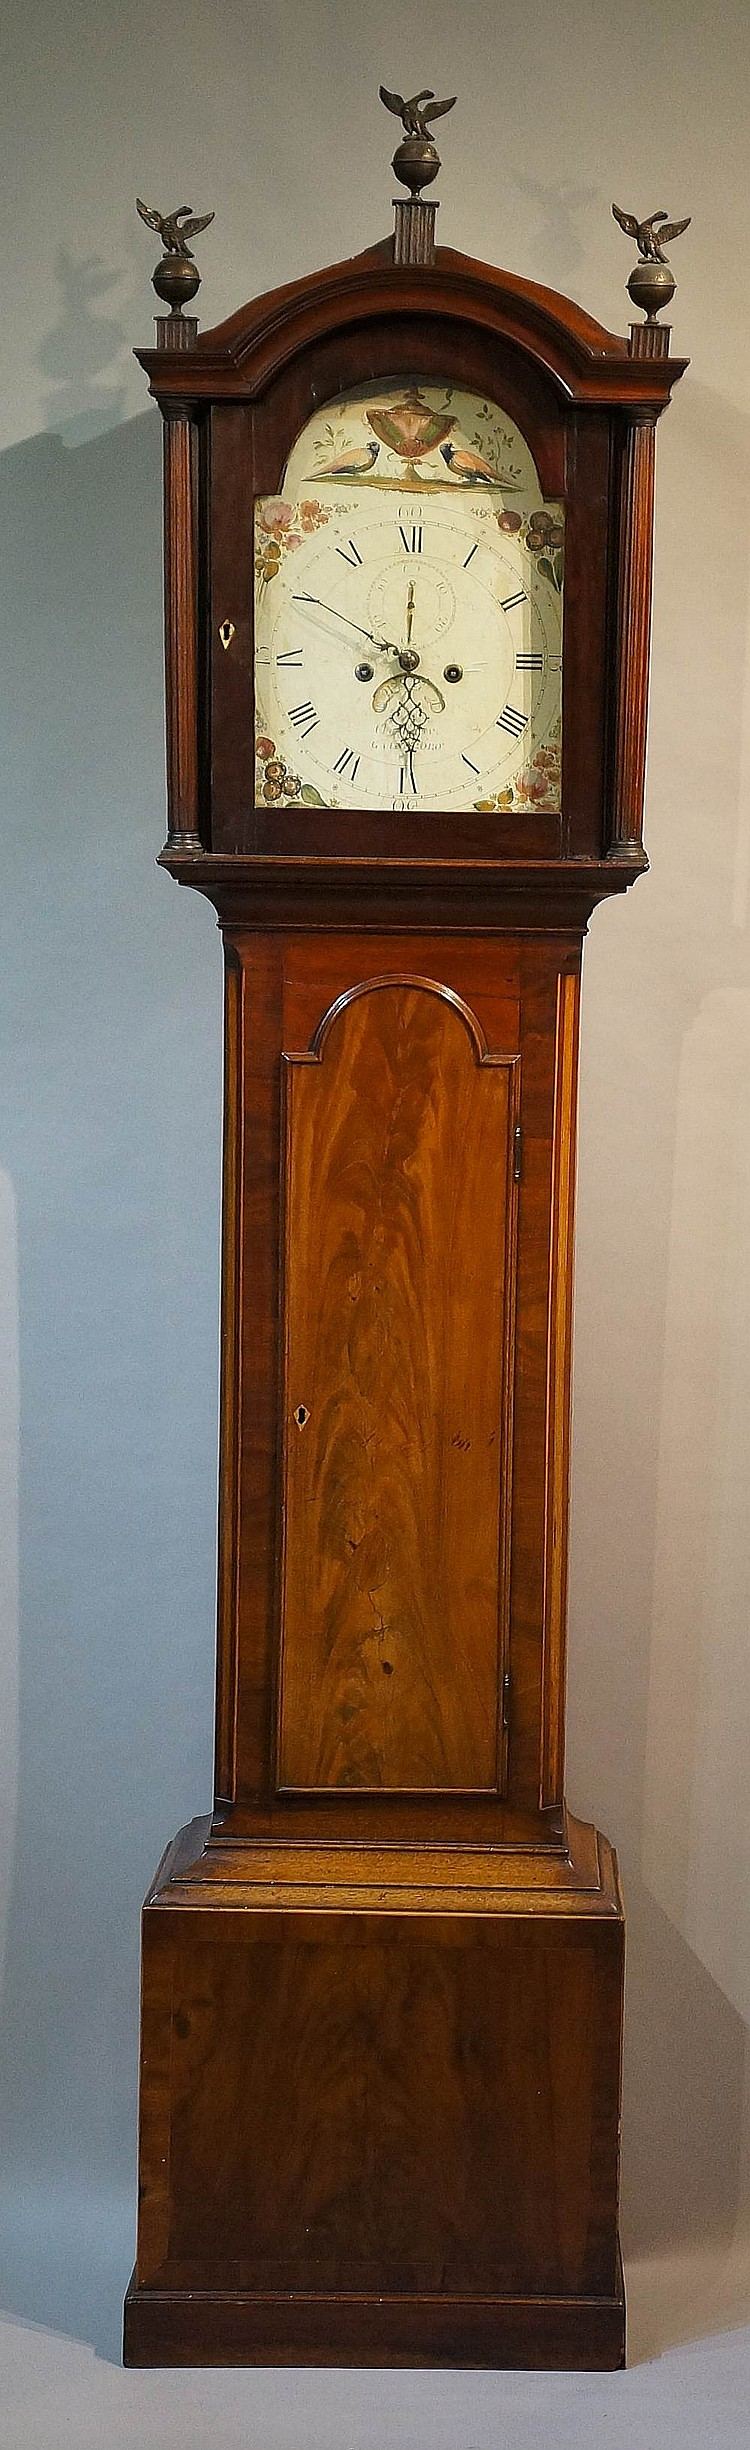 A George III mahogany longcase clock, the domed hood with cavetto moulded c